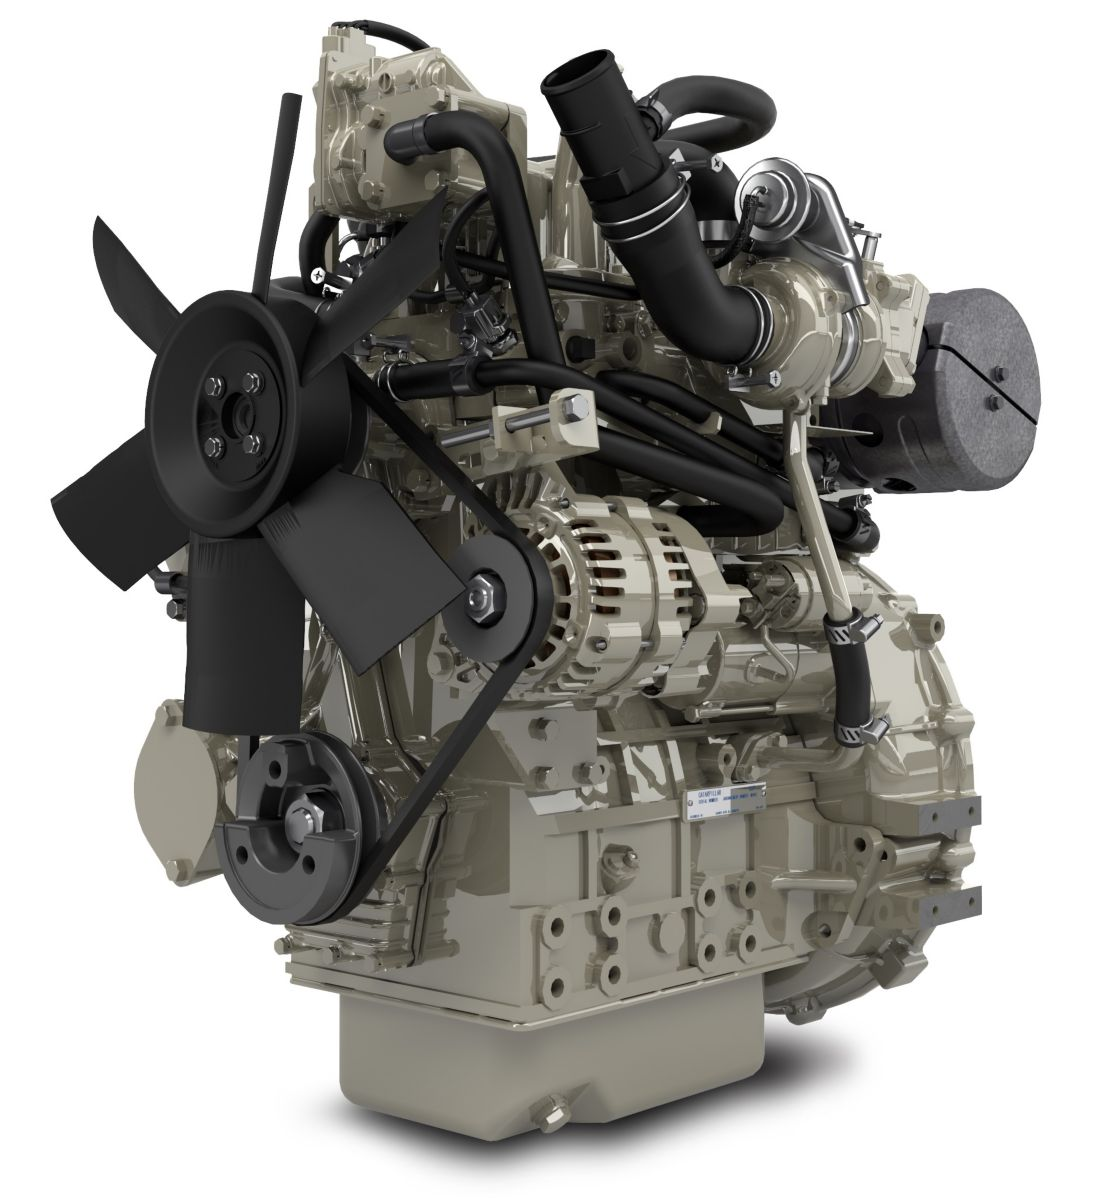 Perkins engines on show at LAMMA 2016